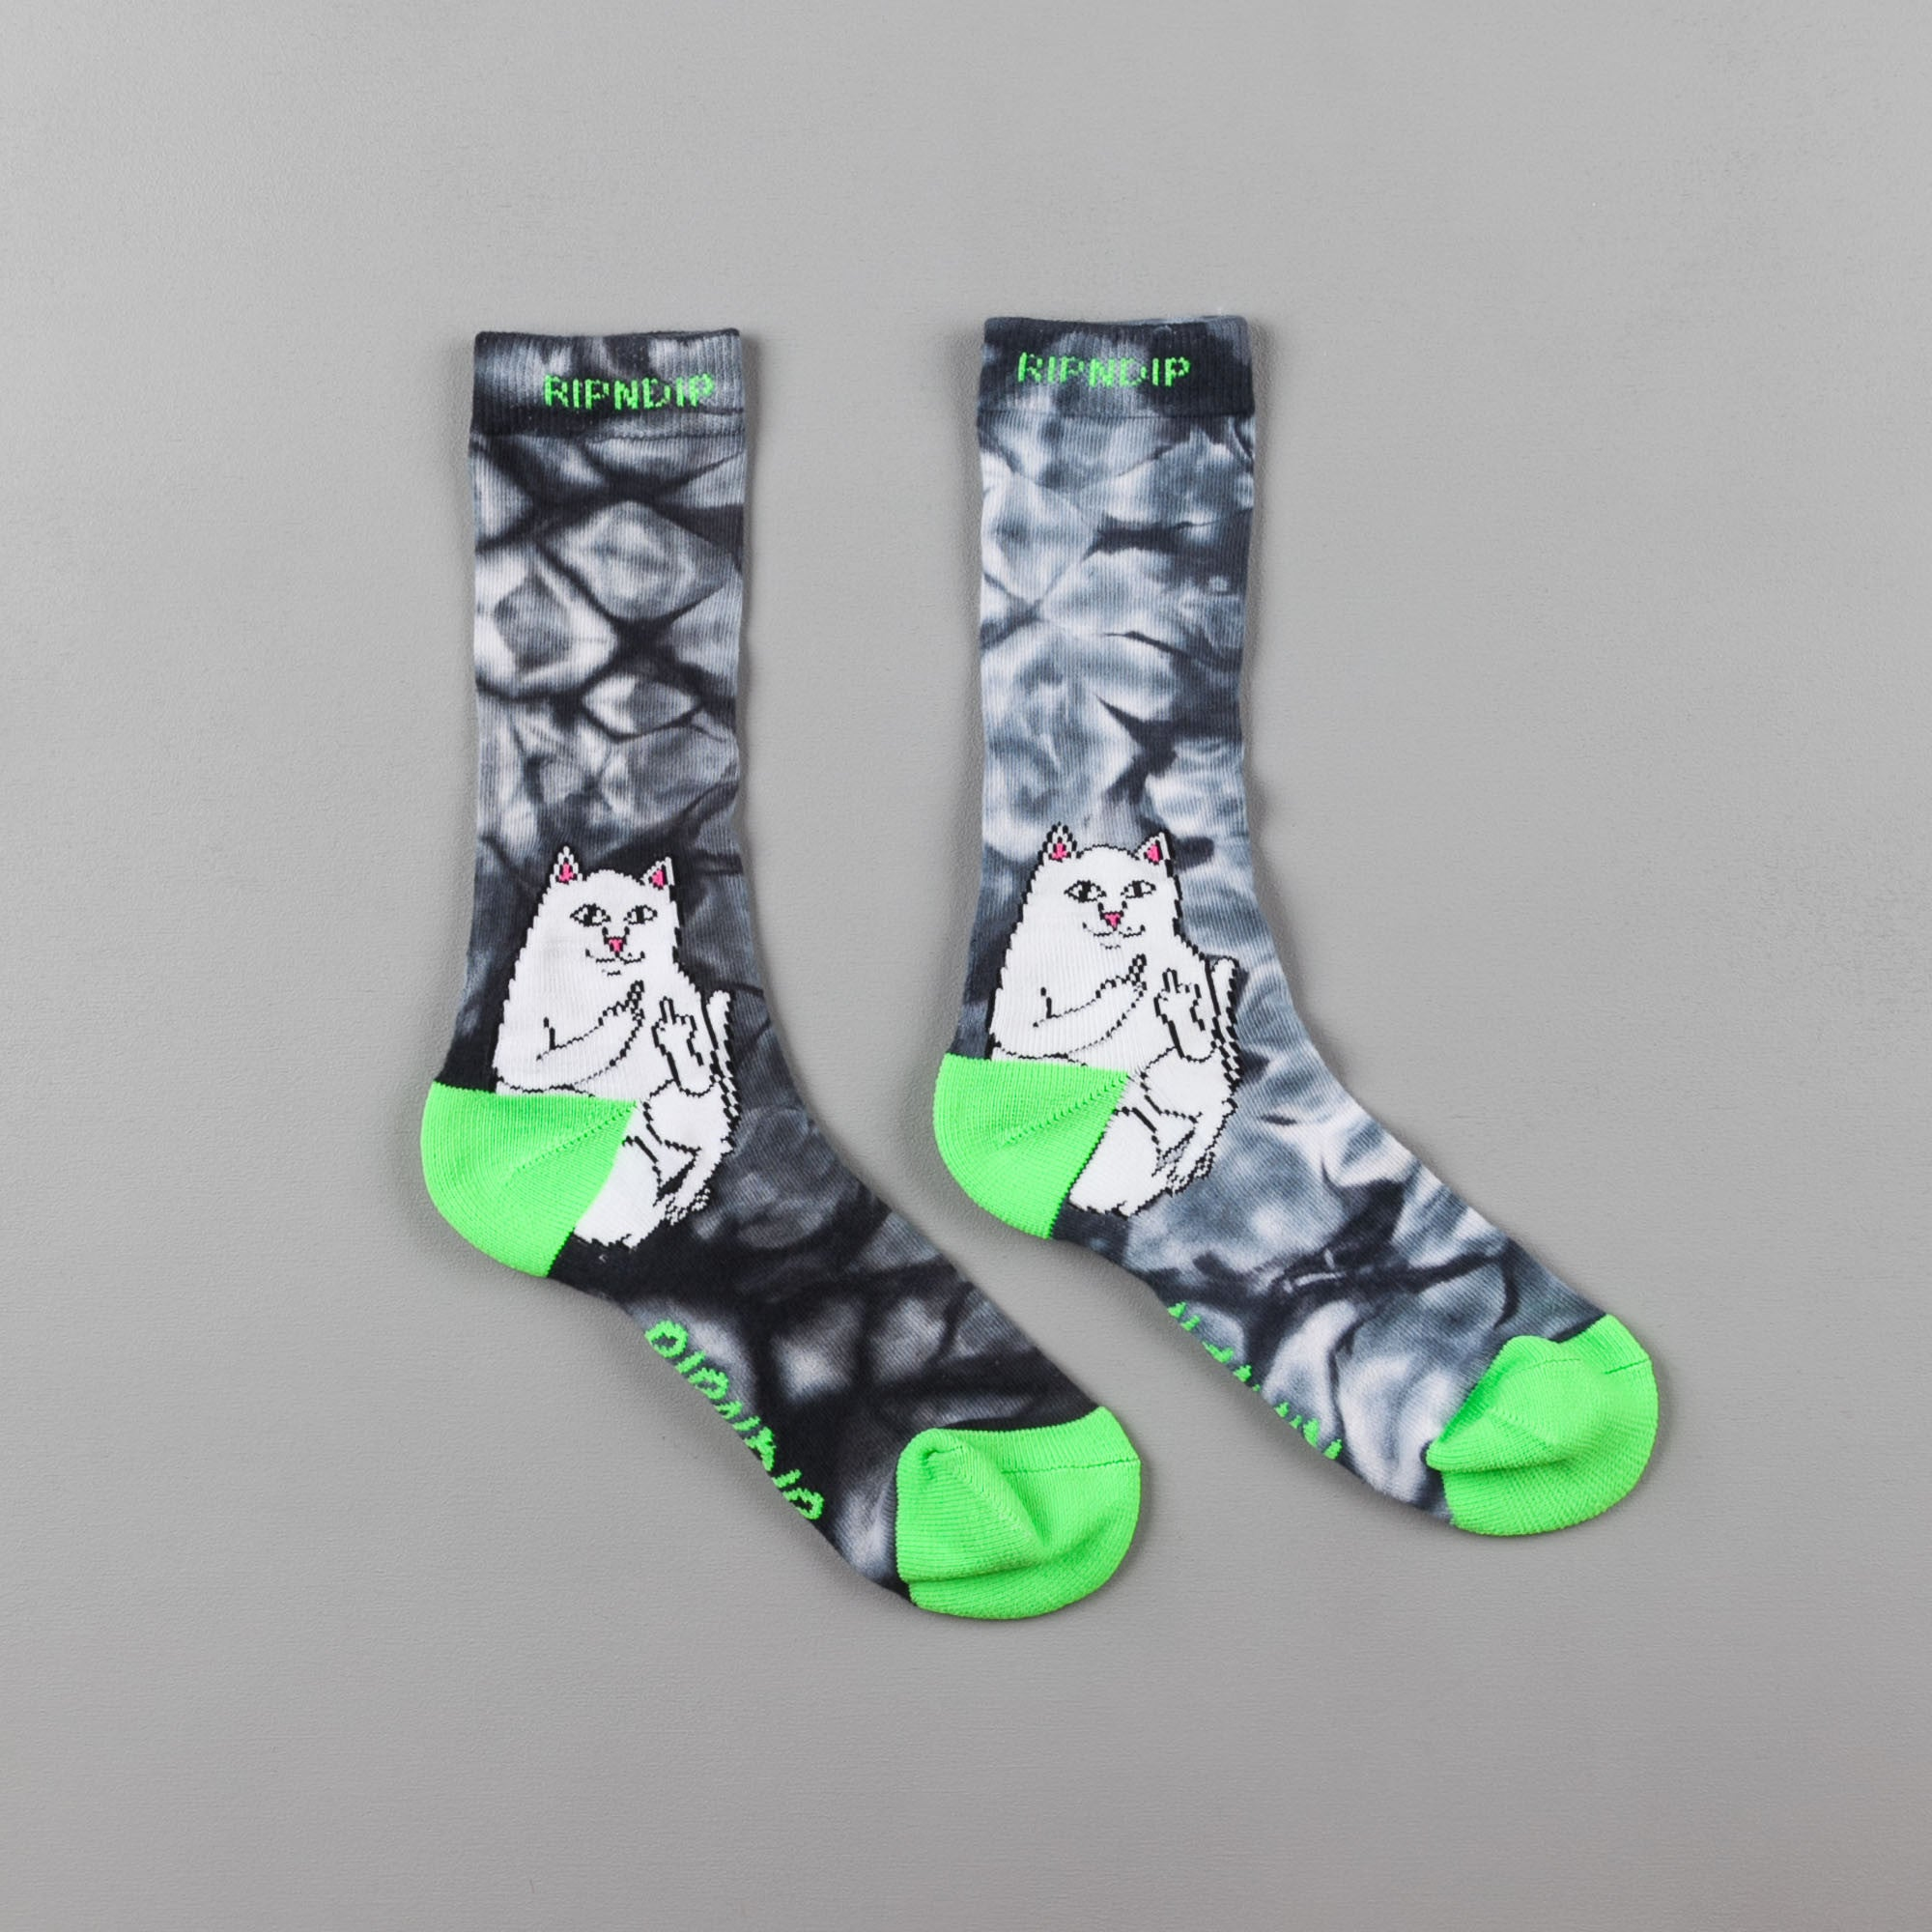 Rip N Dip Lord Nermal Socks - Black Acid Dye / Green